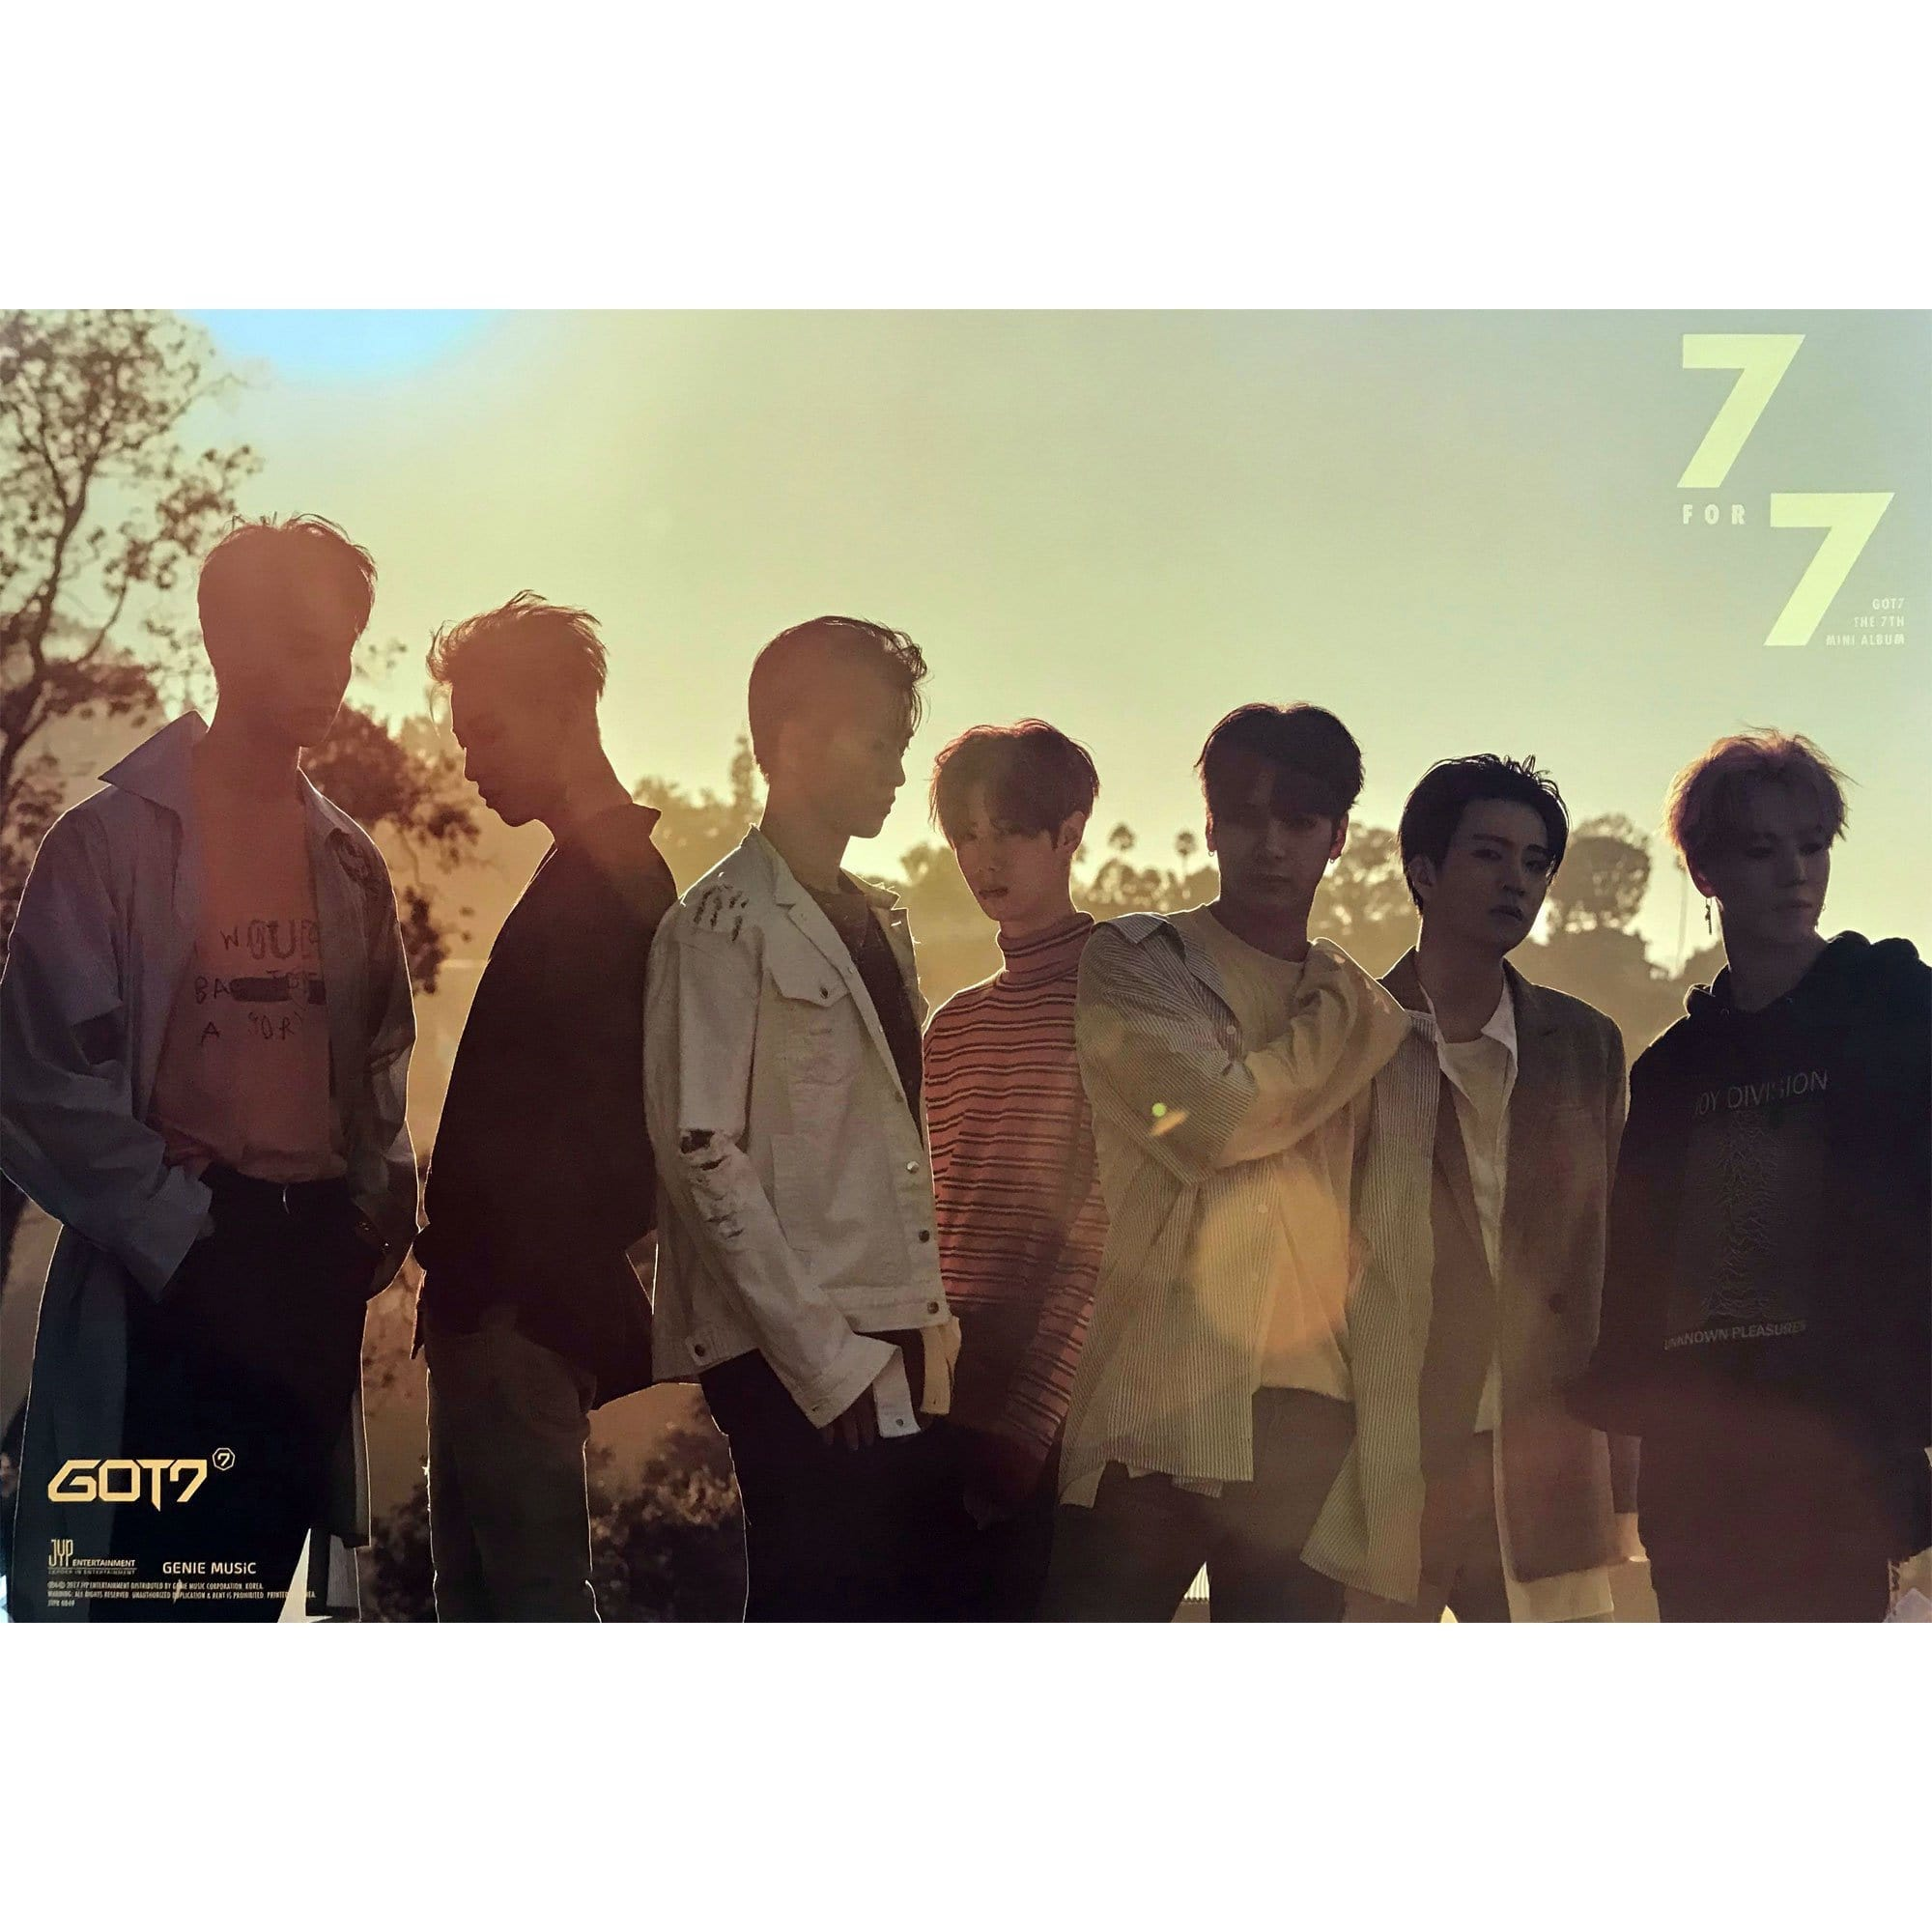 갓세븐 | GOT7 | 7TH MINI ALBUM - 7FOR7 | POSTER